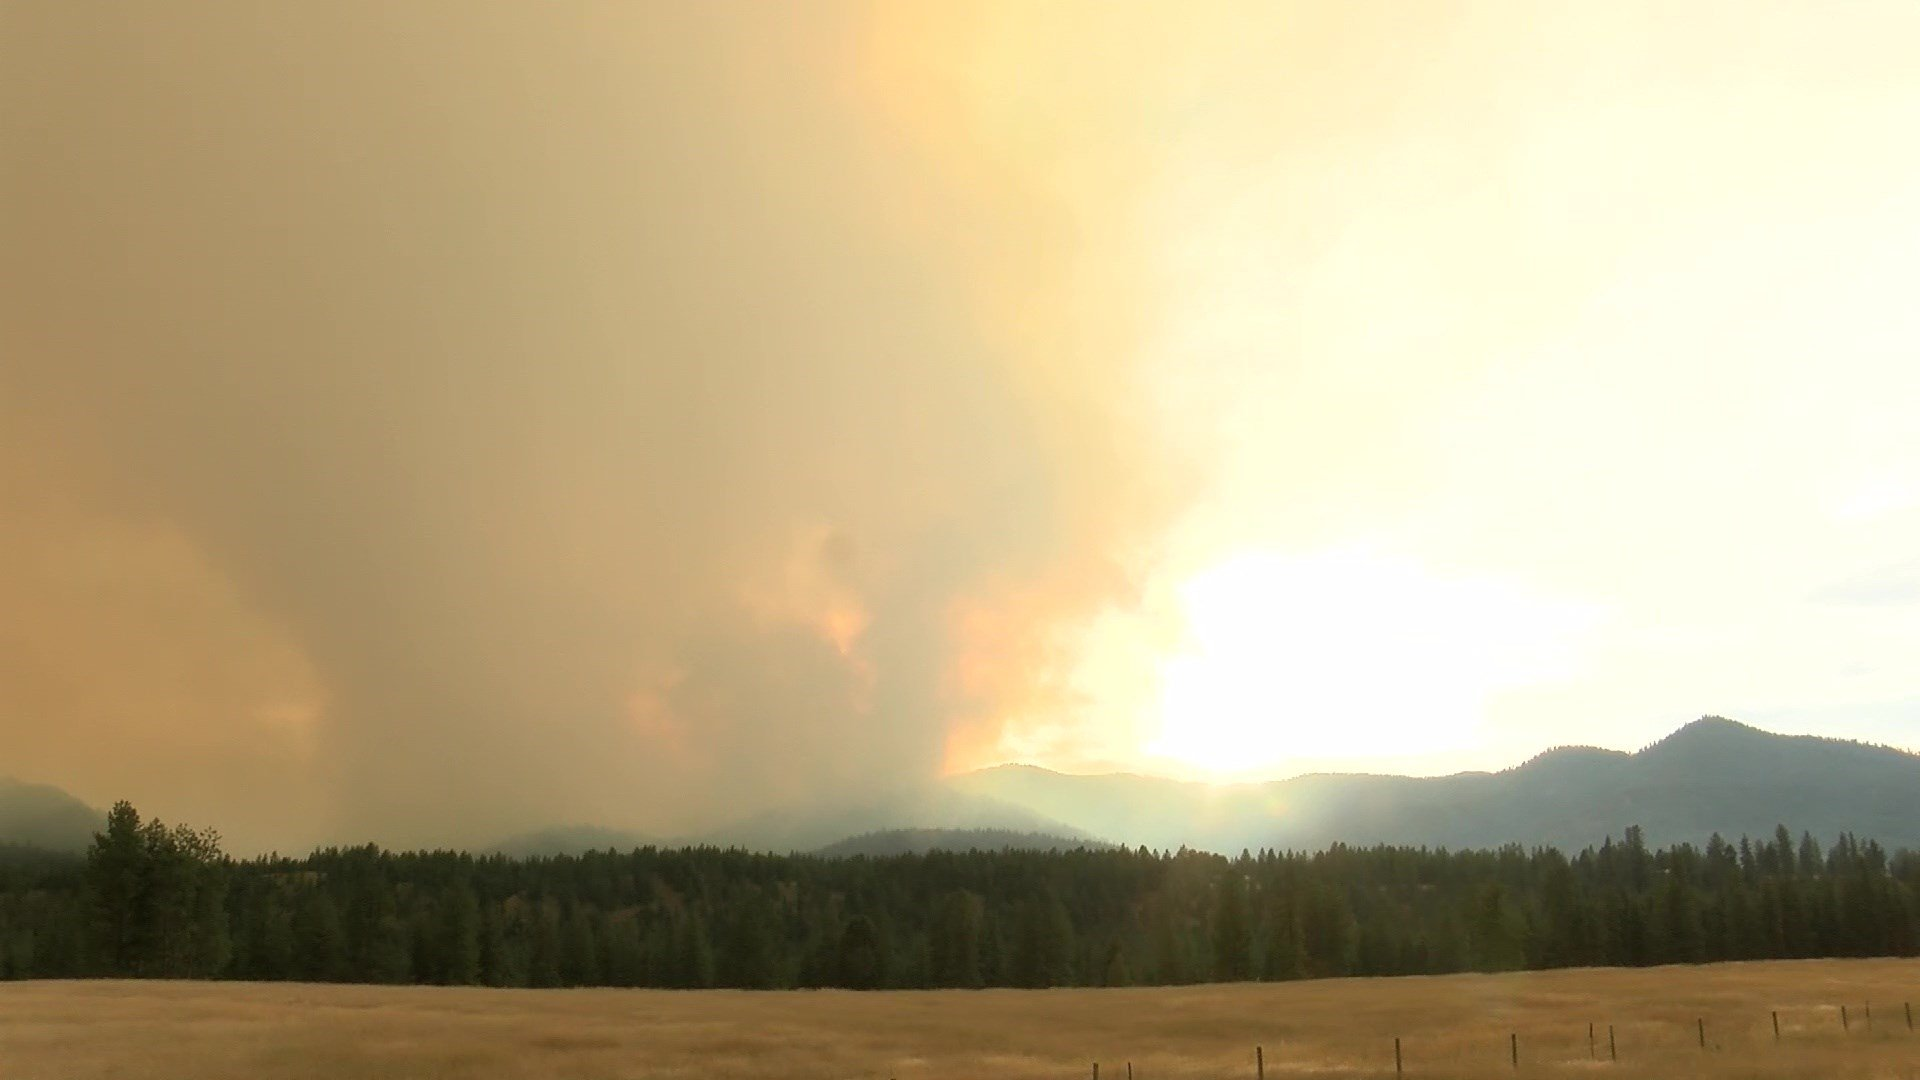 The Sunrise fire, which is 11miles southeast of Superior, has scorched more than 2,700 acres as of Wednesday